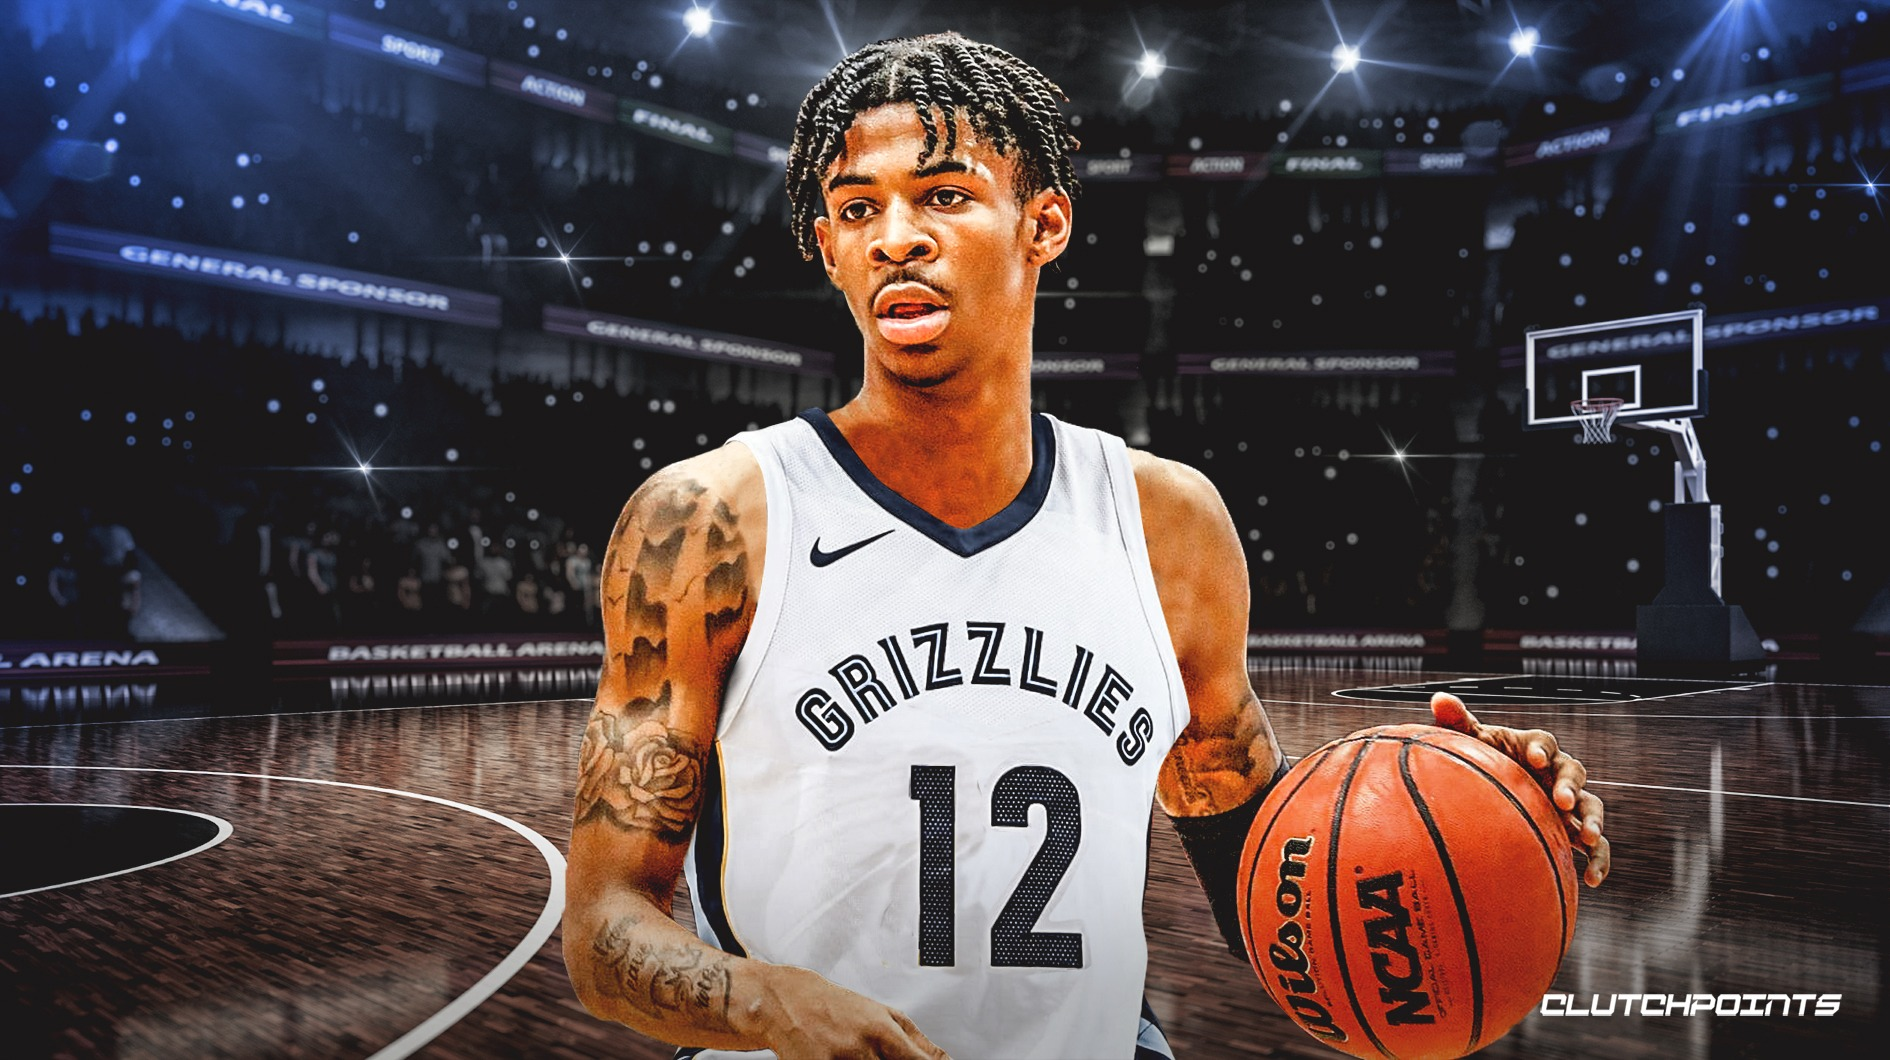 NBA 2K20 Ratings released: Find out who are the top 20